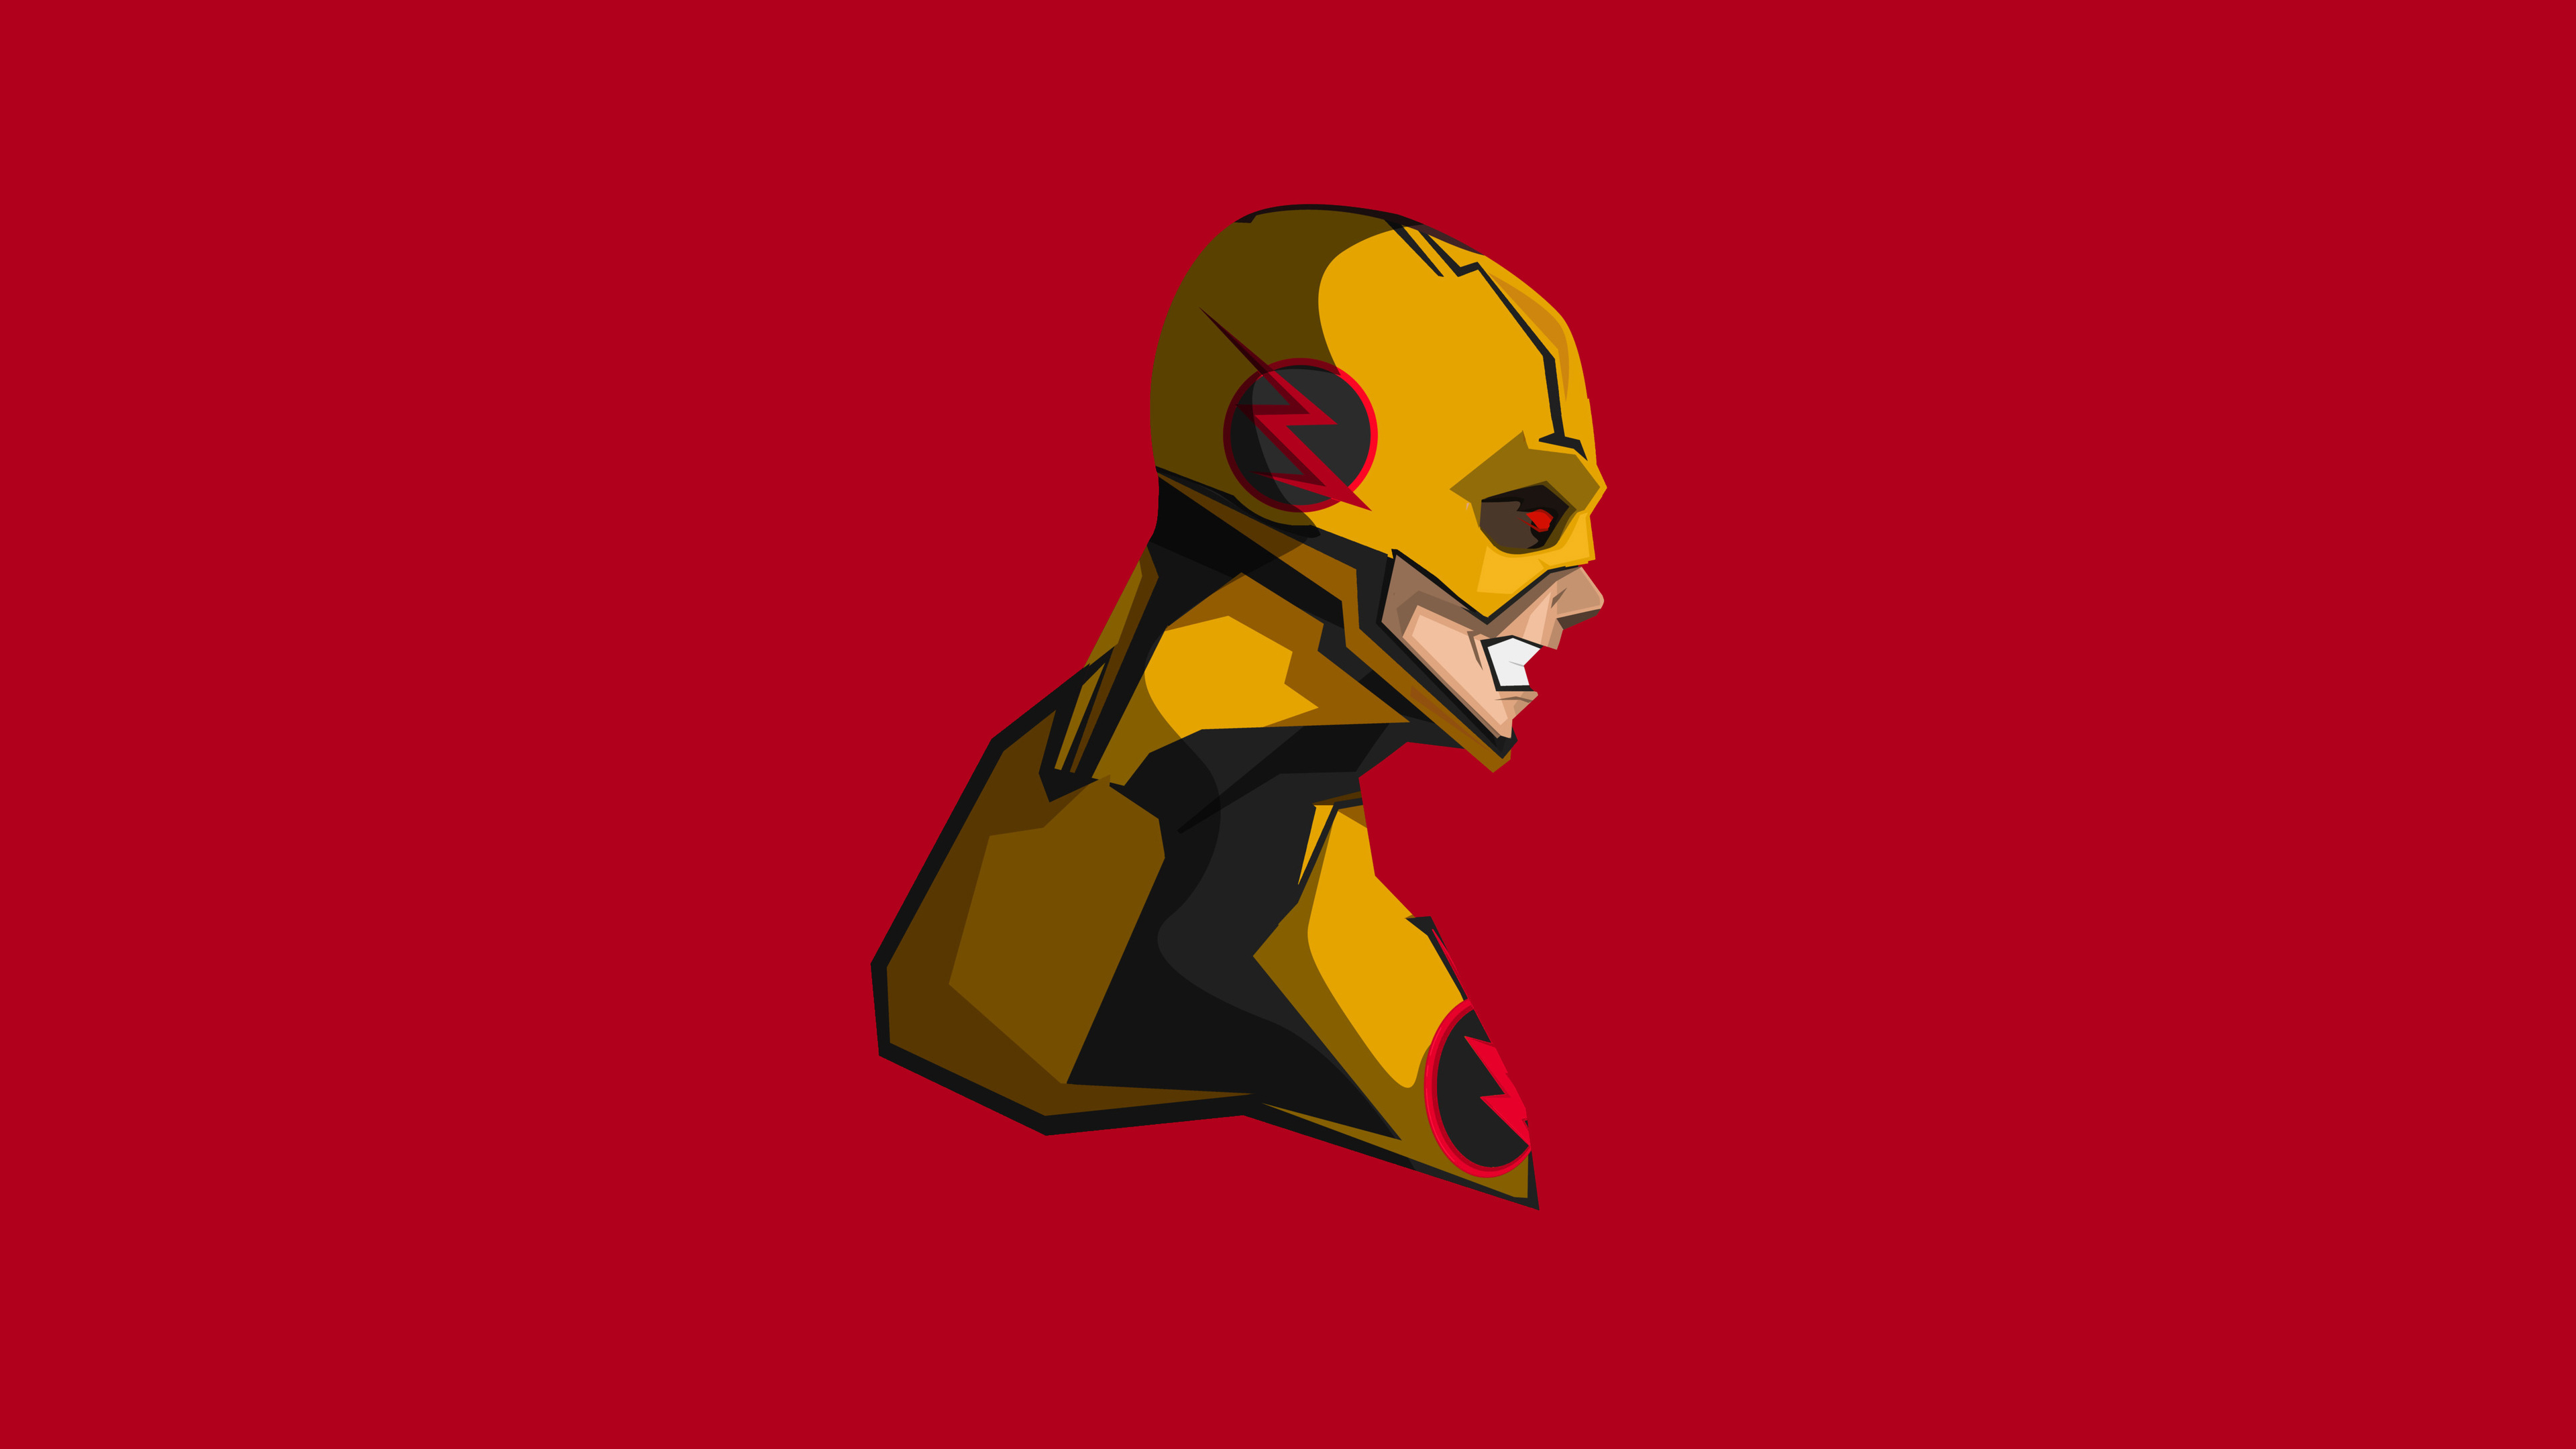 Wallpaper 4k Reverse Flash 4k Minimalism 4k Wallpapers Artist